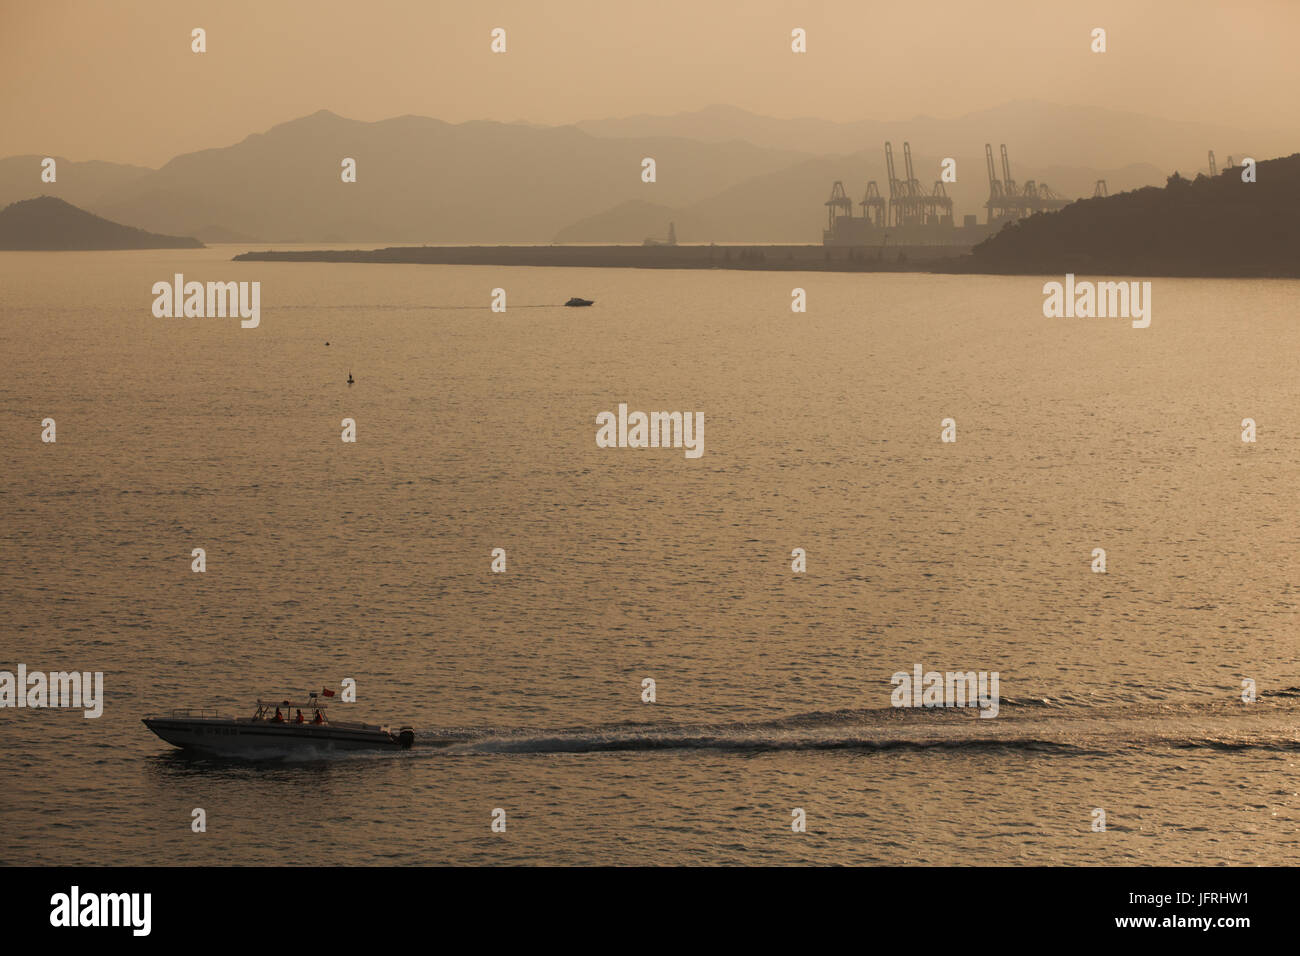 Chinese coastguard speedboat at daily mission; Yantian harbor area, Dameisha beach, Shenzhen, Guangdong, China; - Stock Image